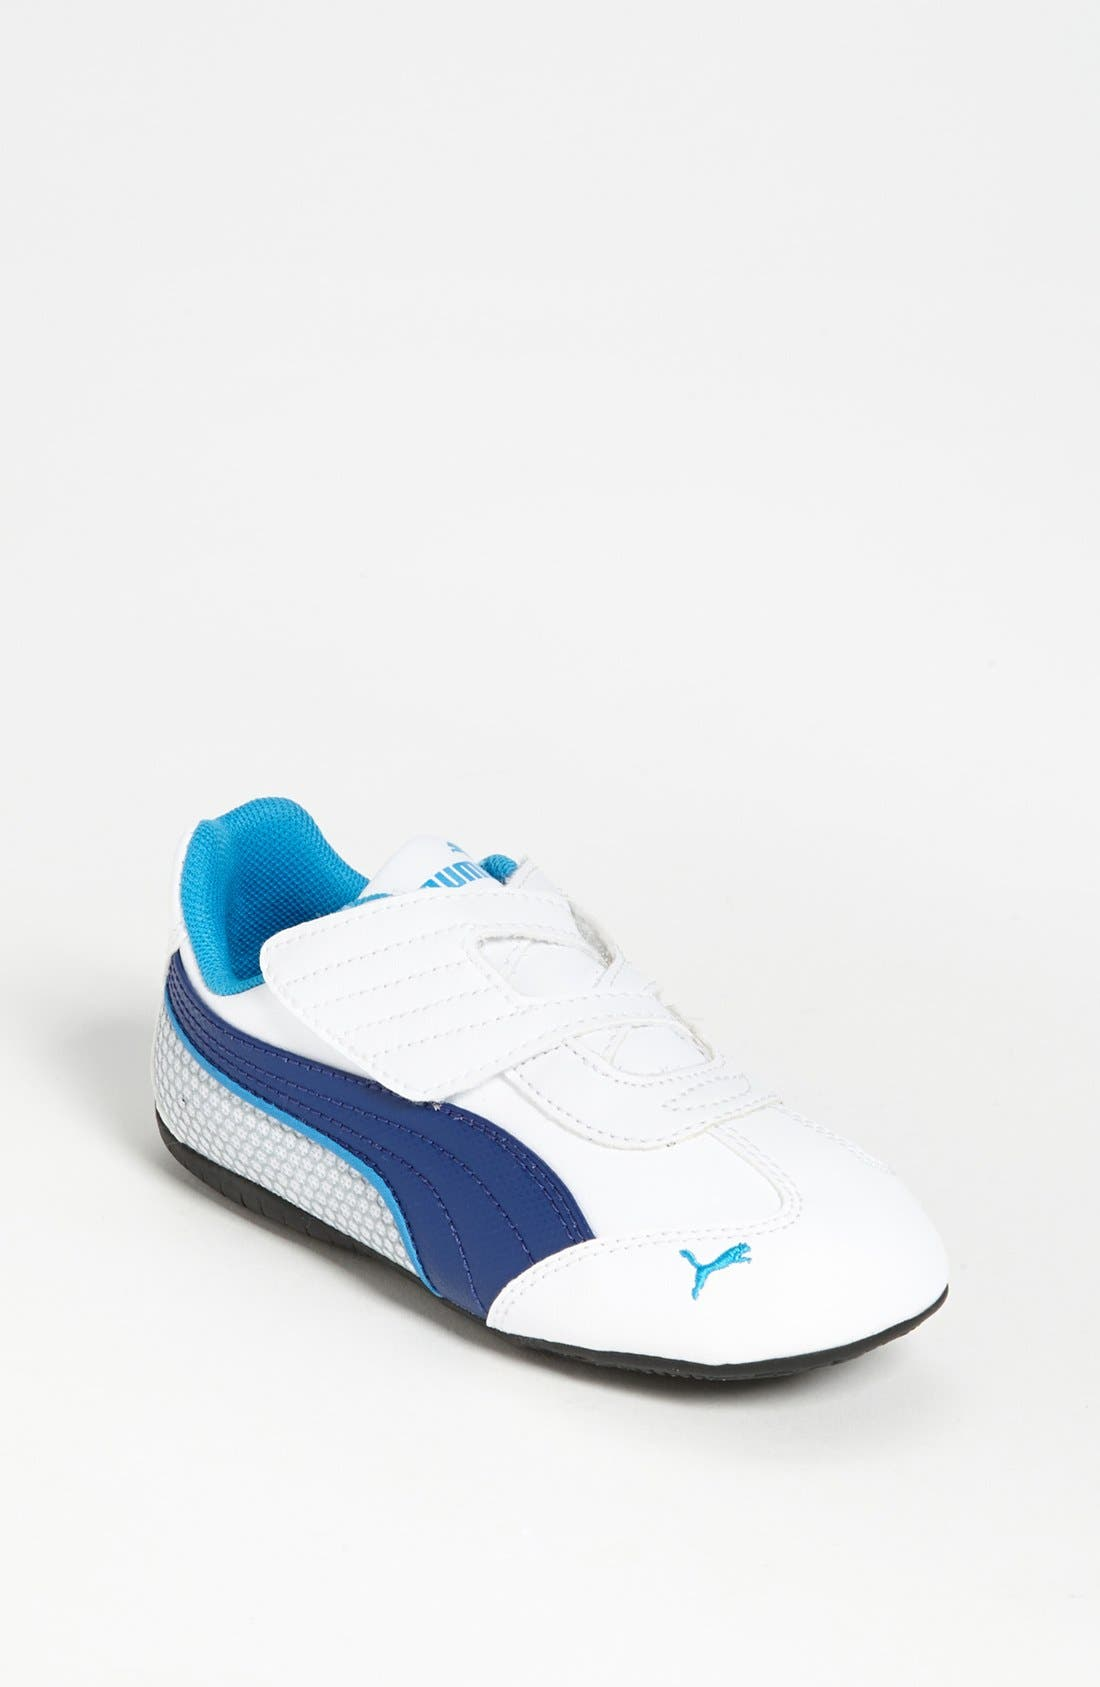 Alternate Image 1 Selected - PUMA 'Delor Cat V' Sneaker (Baby, Walker, Toddler & Little Kid)